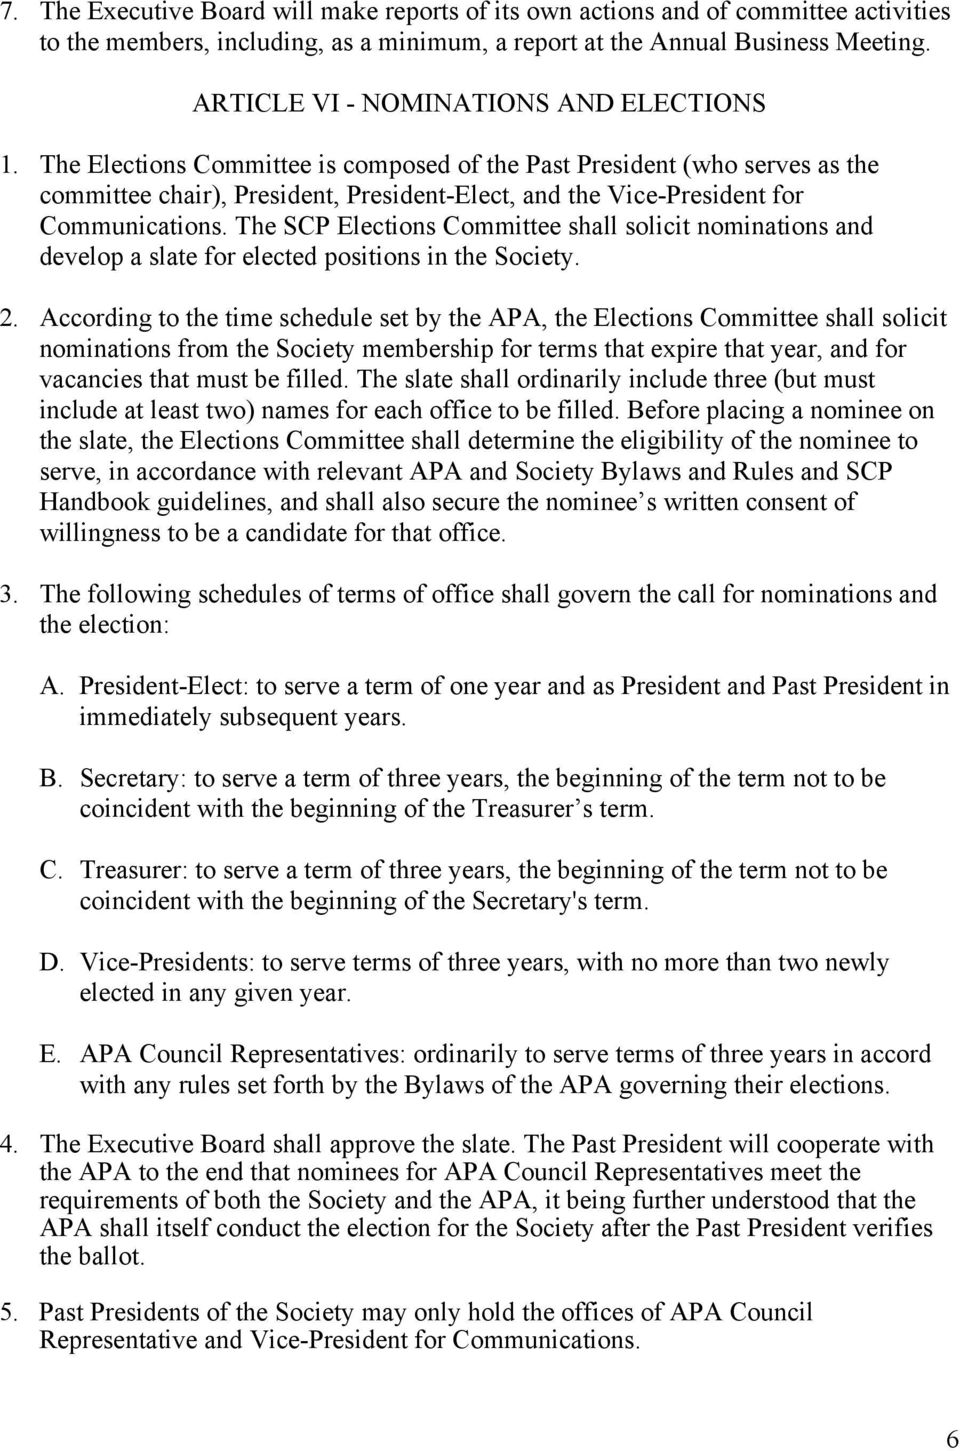 The Elections Committee is composed of the Past President (who serves as the committee chair), President, President-Elect, and the Vice-President for Communications.